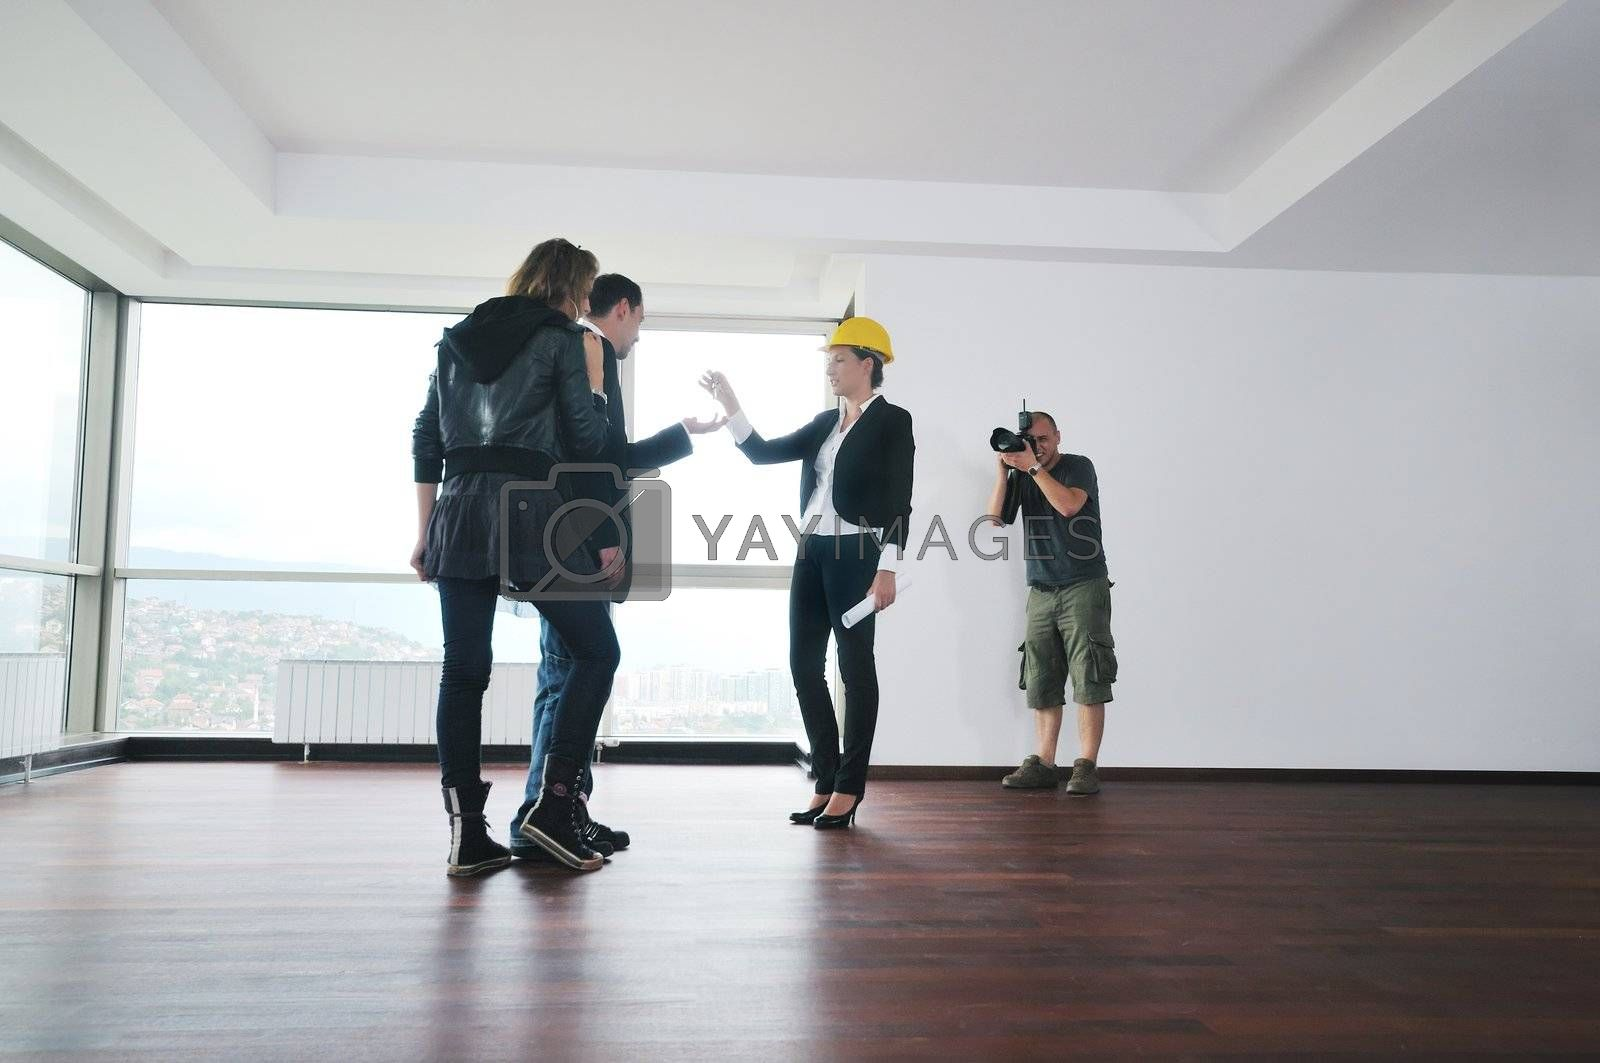 profesional stock photographer on stock photo session with young models